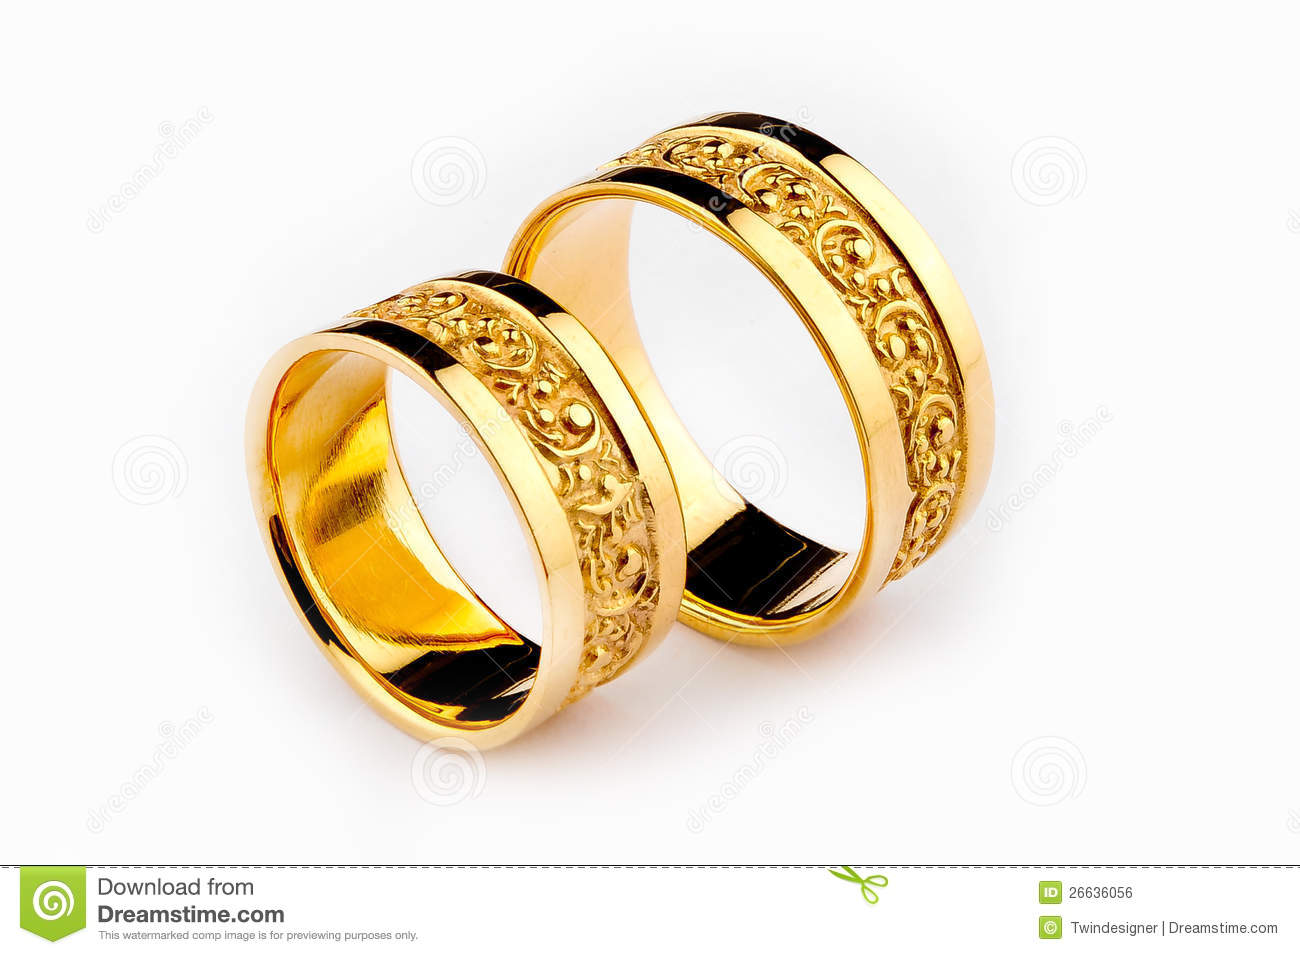 stock image gold wedding rings image gold wedding bands Gold Wedding Rings Royalty Free Stock Image